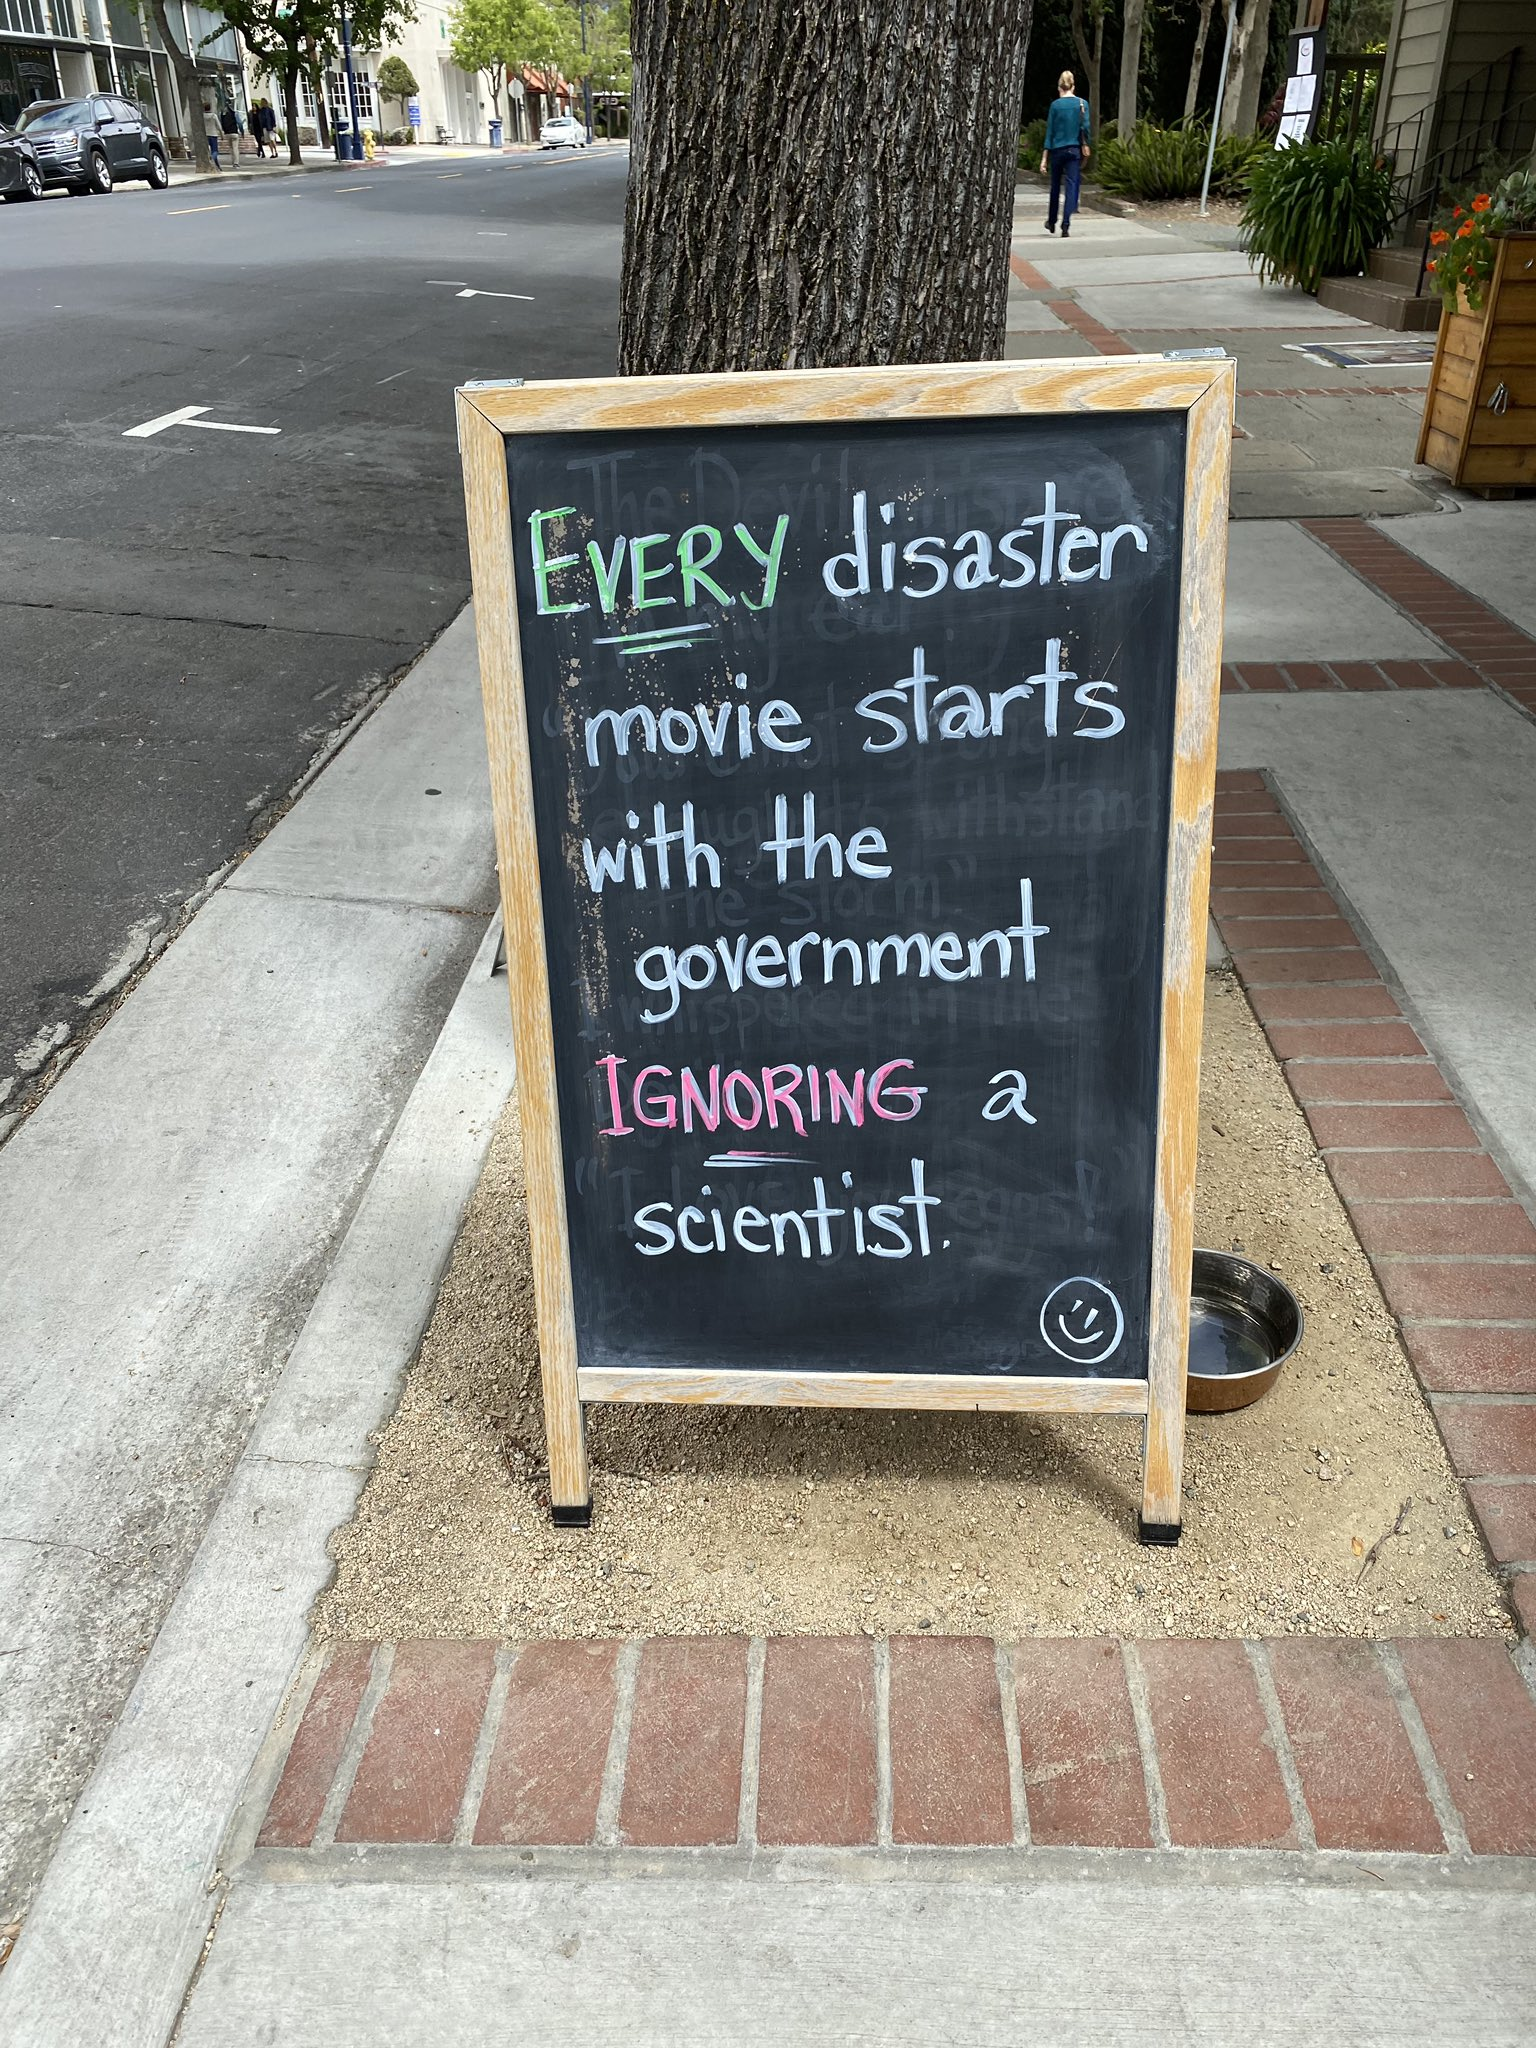 One House Bakery on science and disaster movies